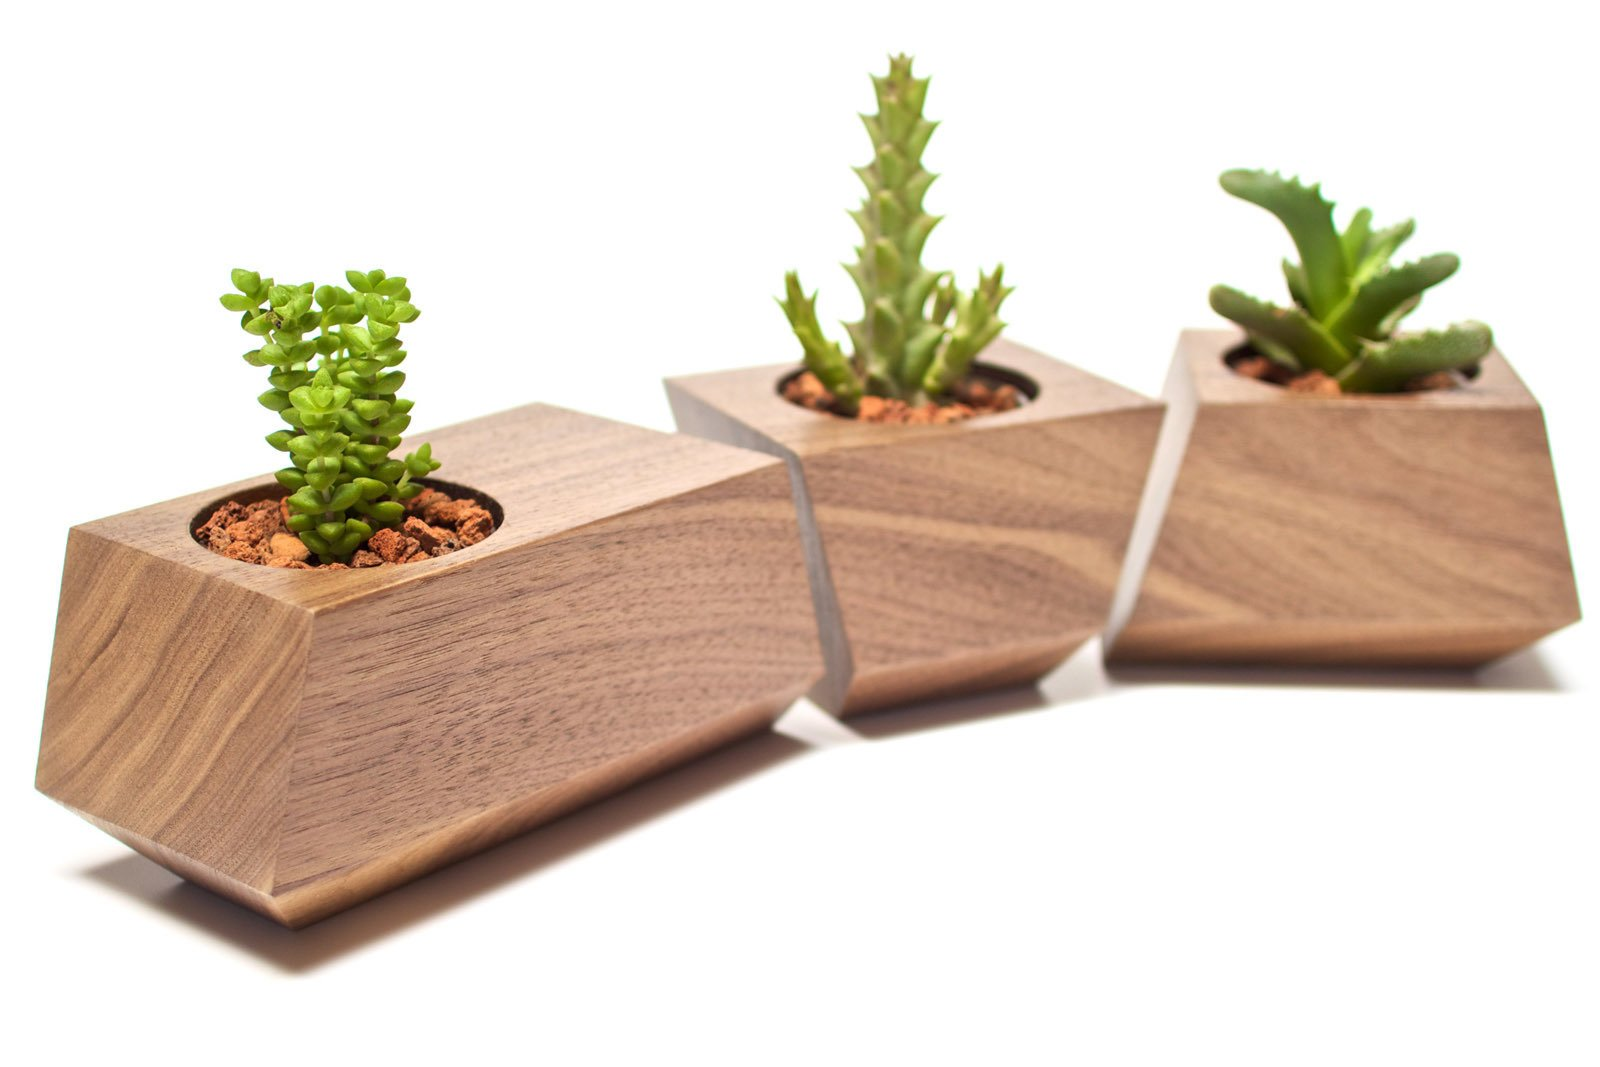 Here's the walnut planter set with a natural finish.  20+ Ways to Design with Planters by Allie Weiss from Walnut Planters by Revolution Design House